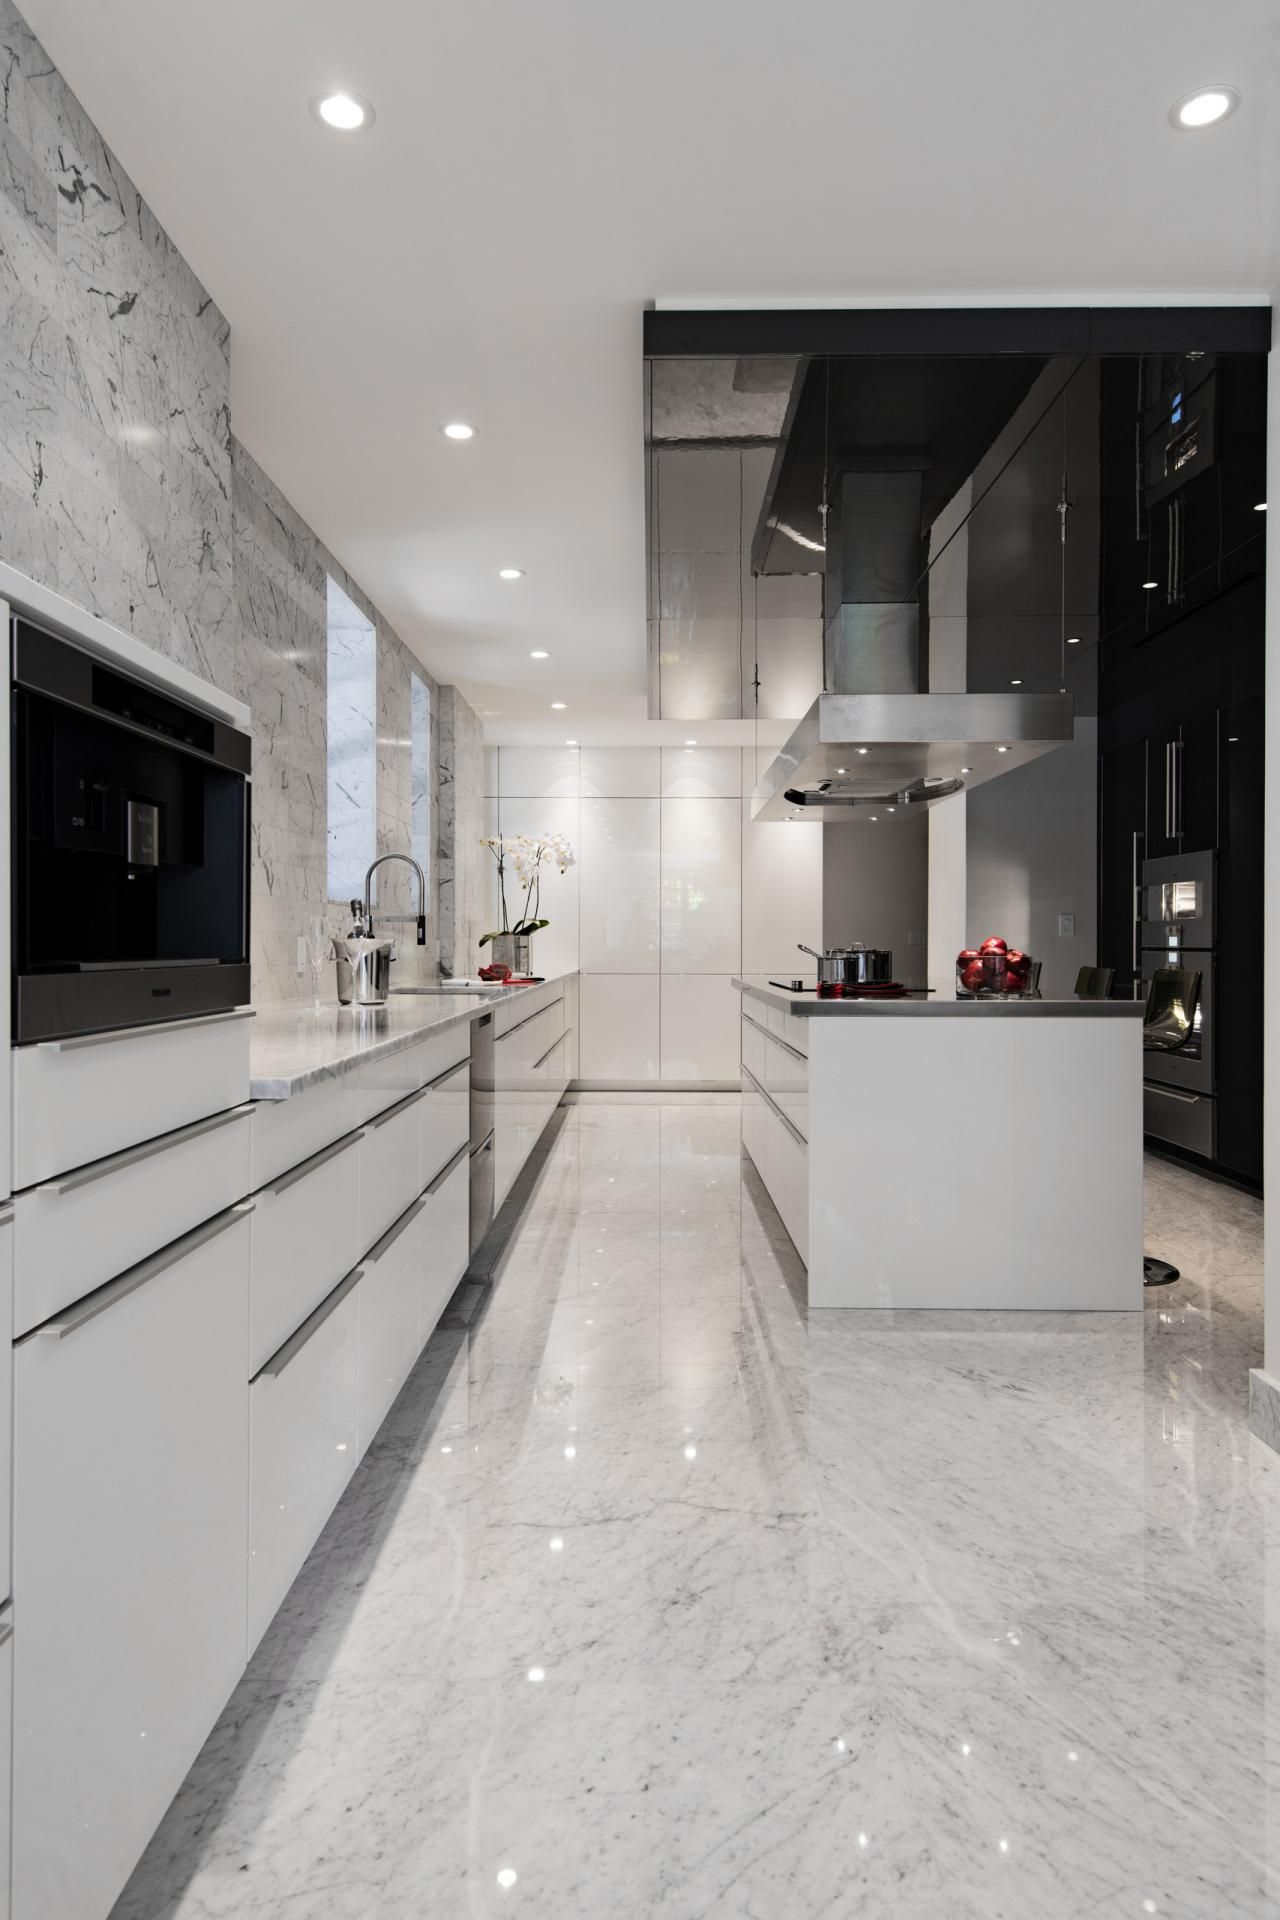 Kitchen Designers Miami Captivating You Won't Believe It's The Same Space — Talented Designers 2018